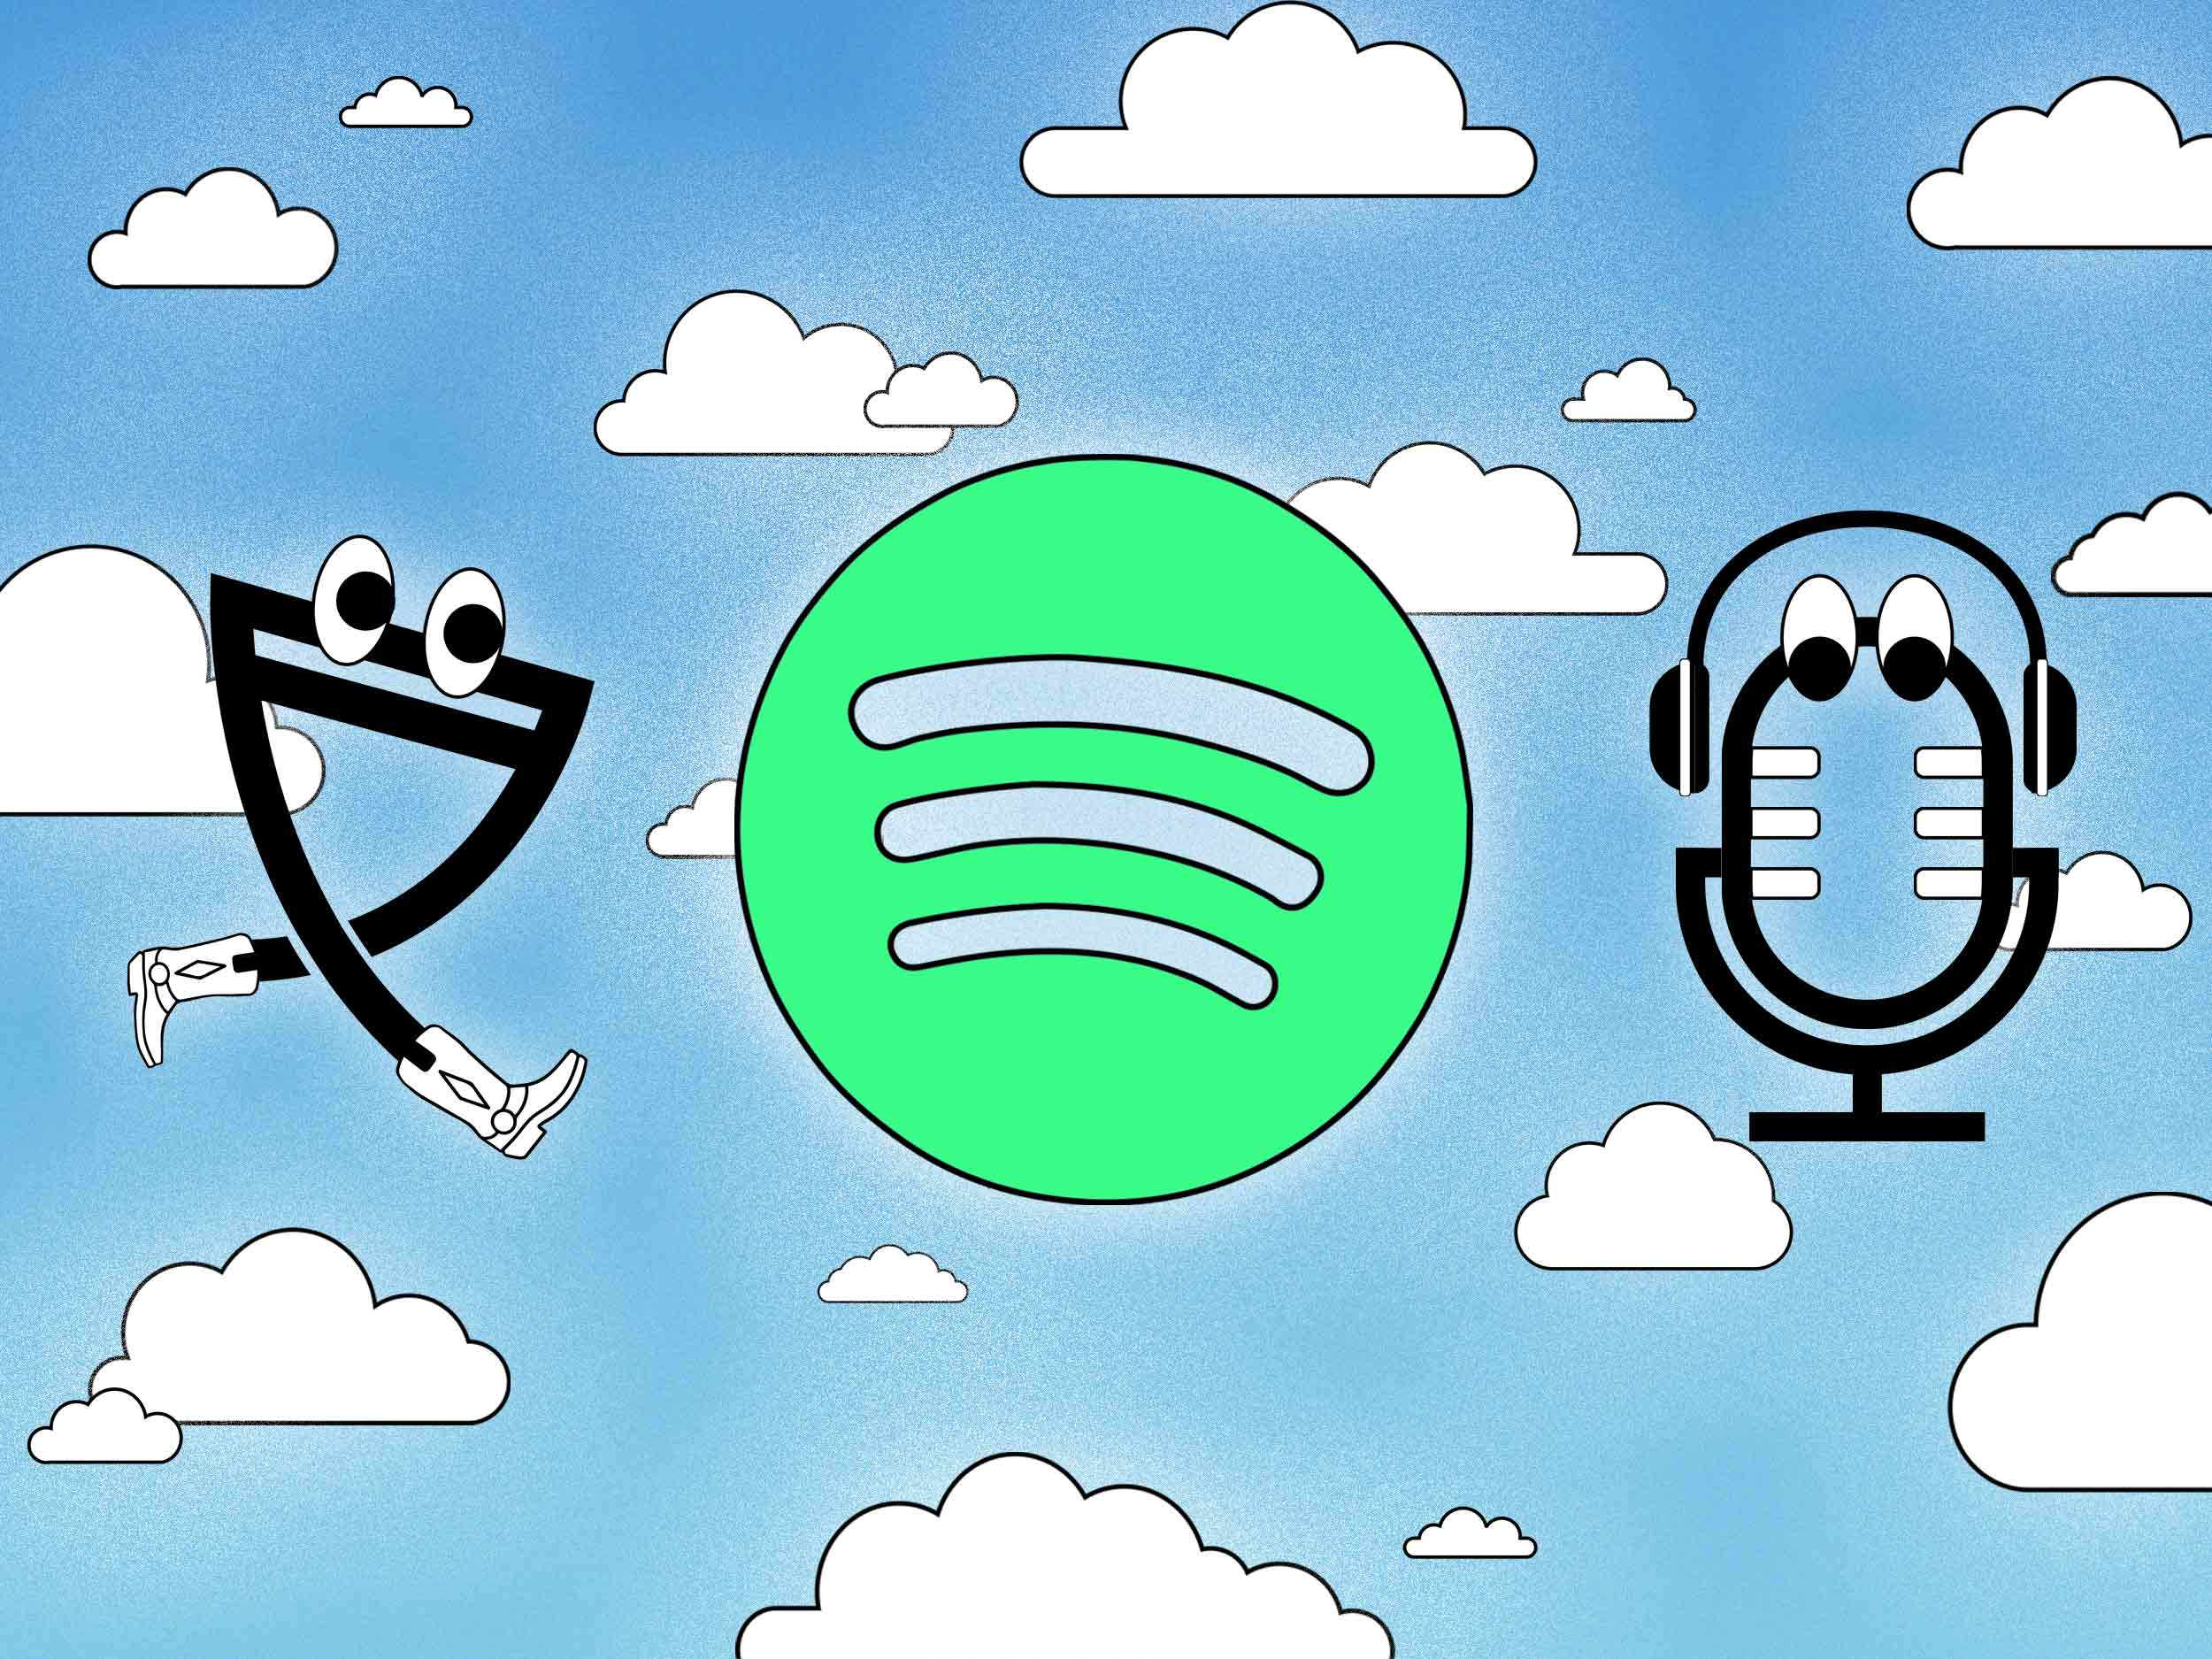 Can't find your favorite song on Spotify? Check the podcast section